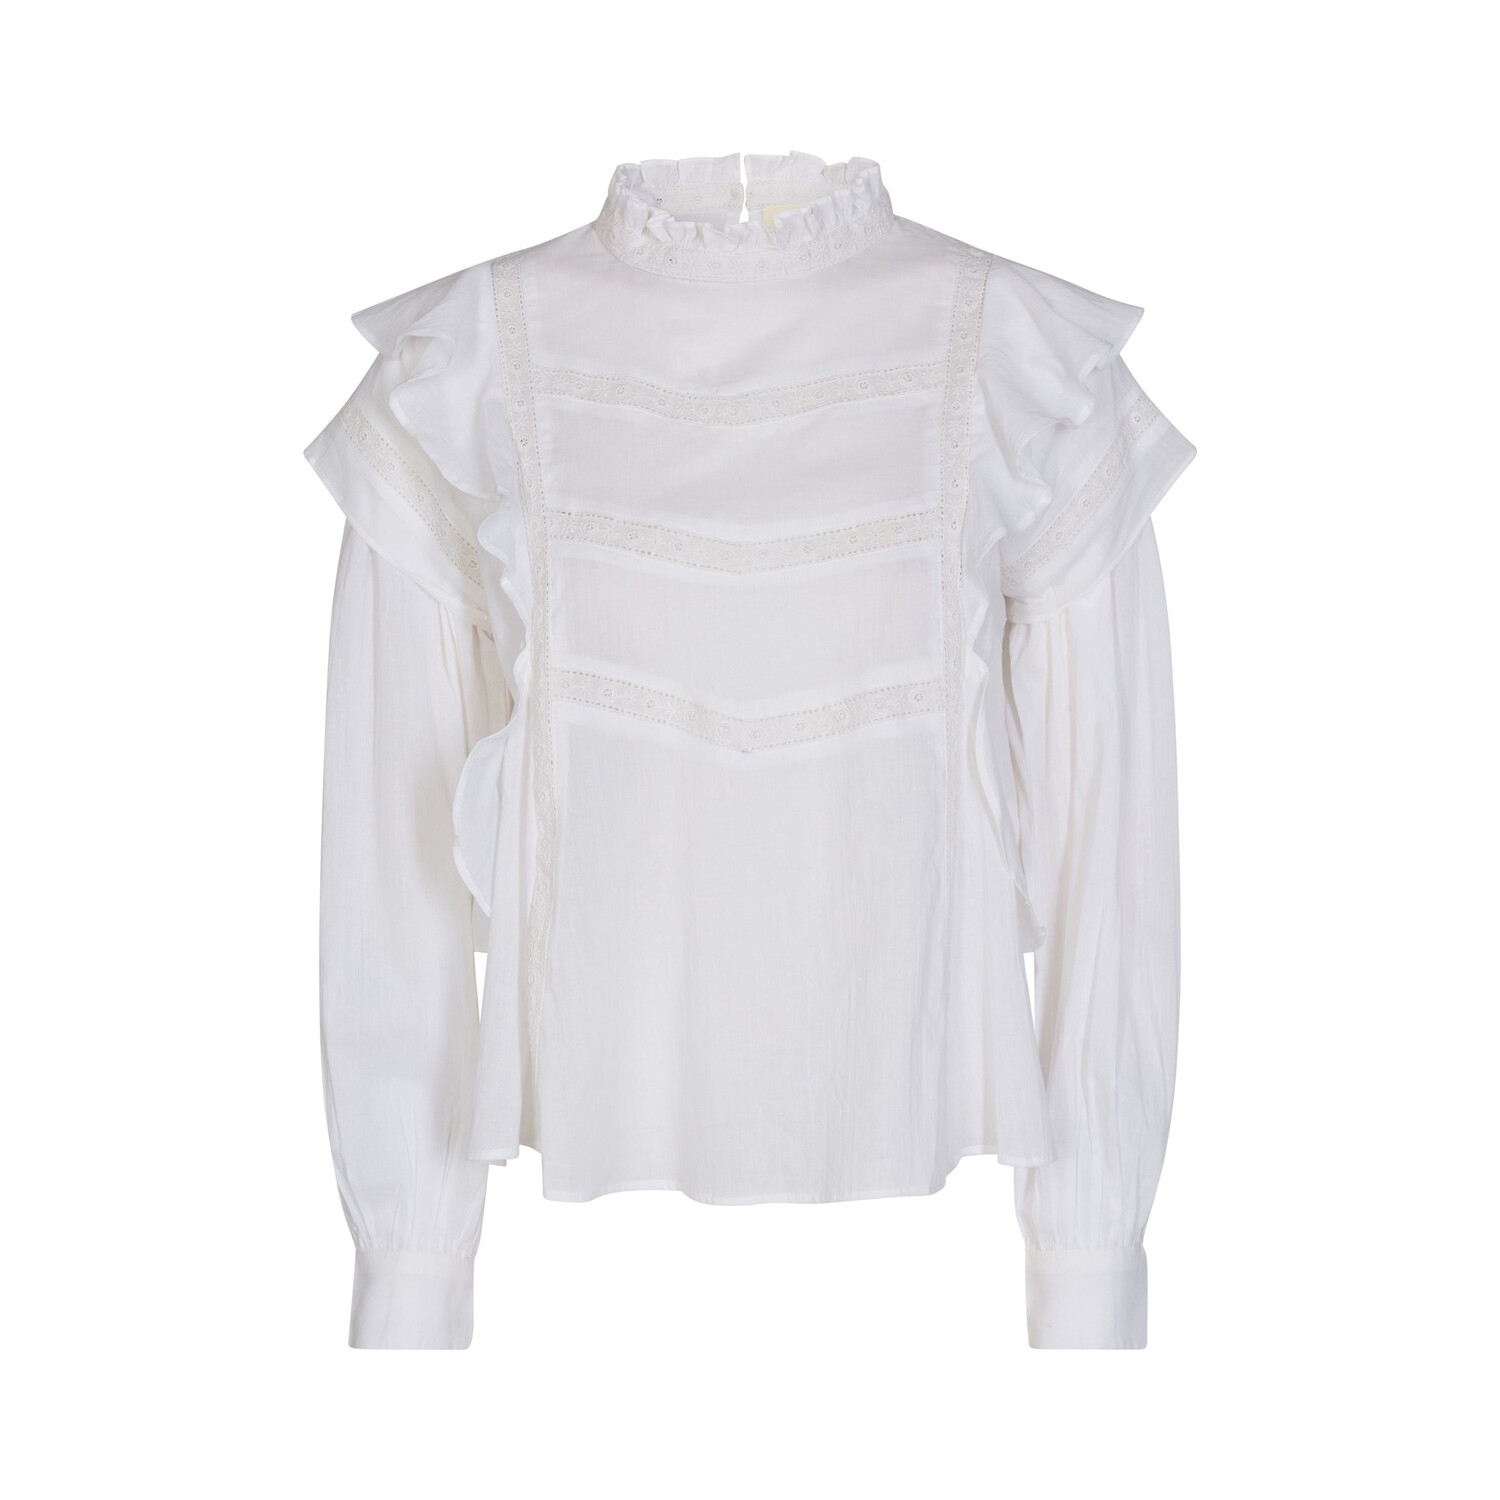 Cotton Lace/frill Trim Shirt Blouse - Coming Soon